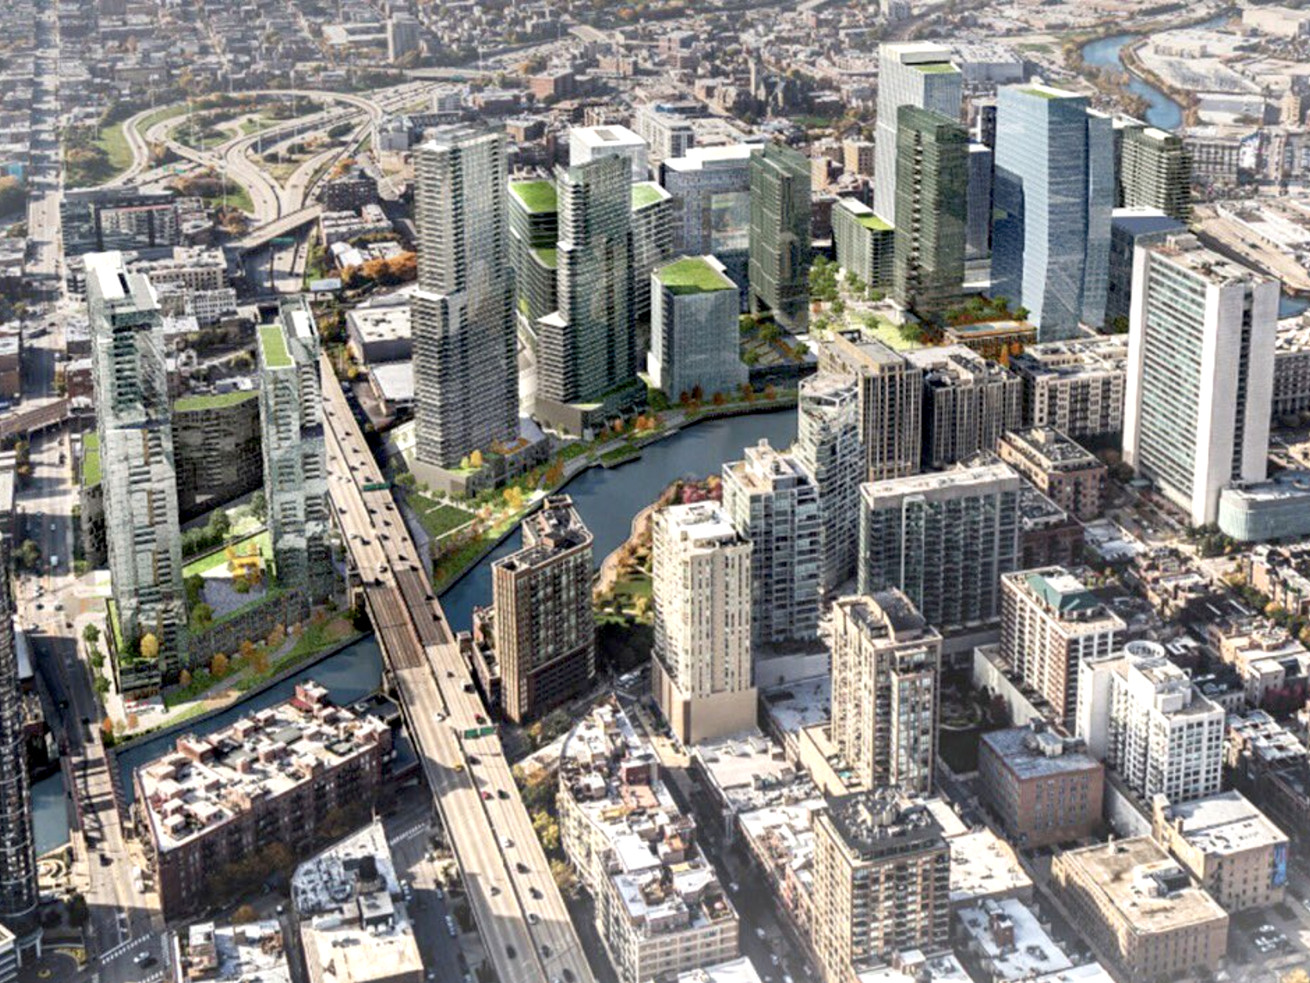 A rendering of the completed River District megaproject.